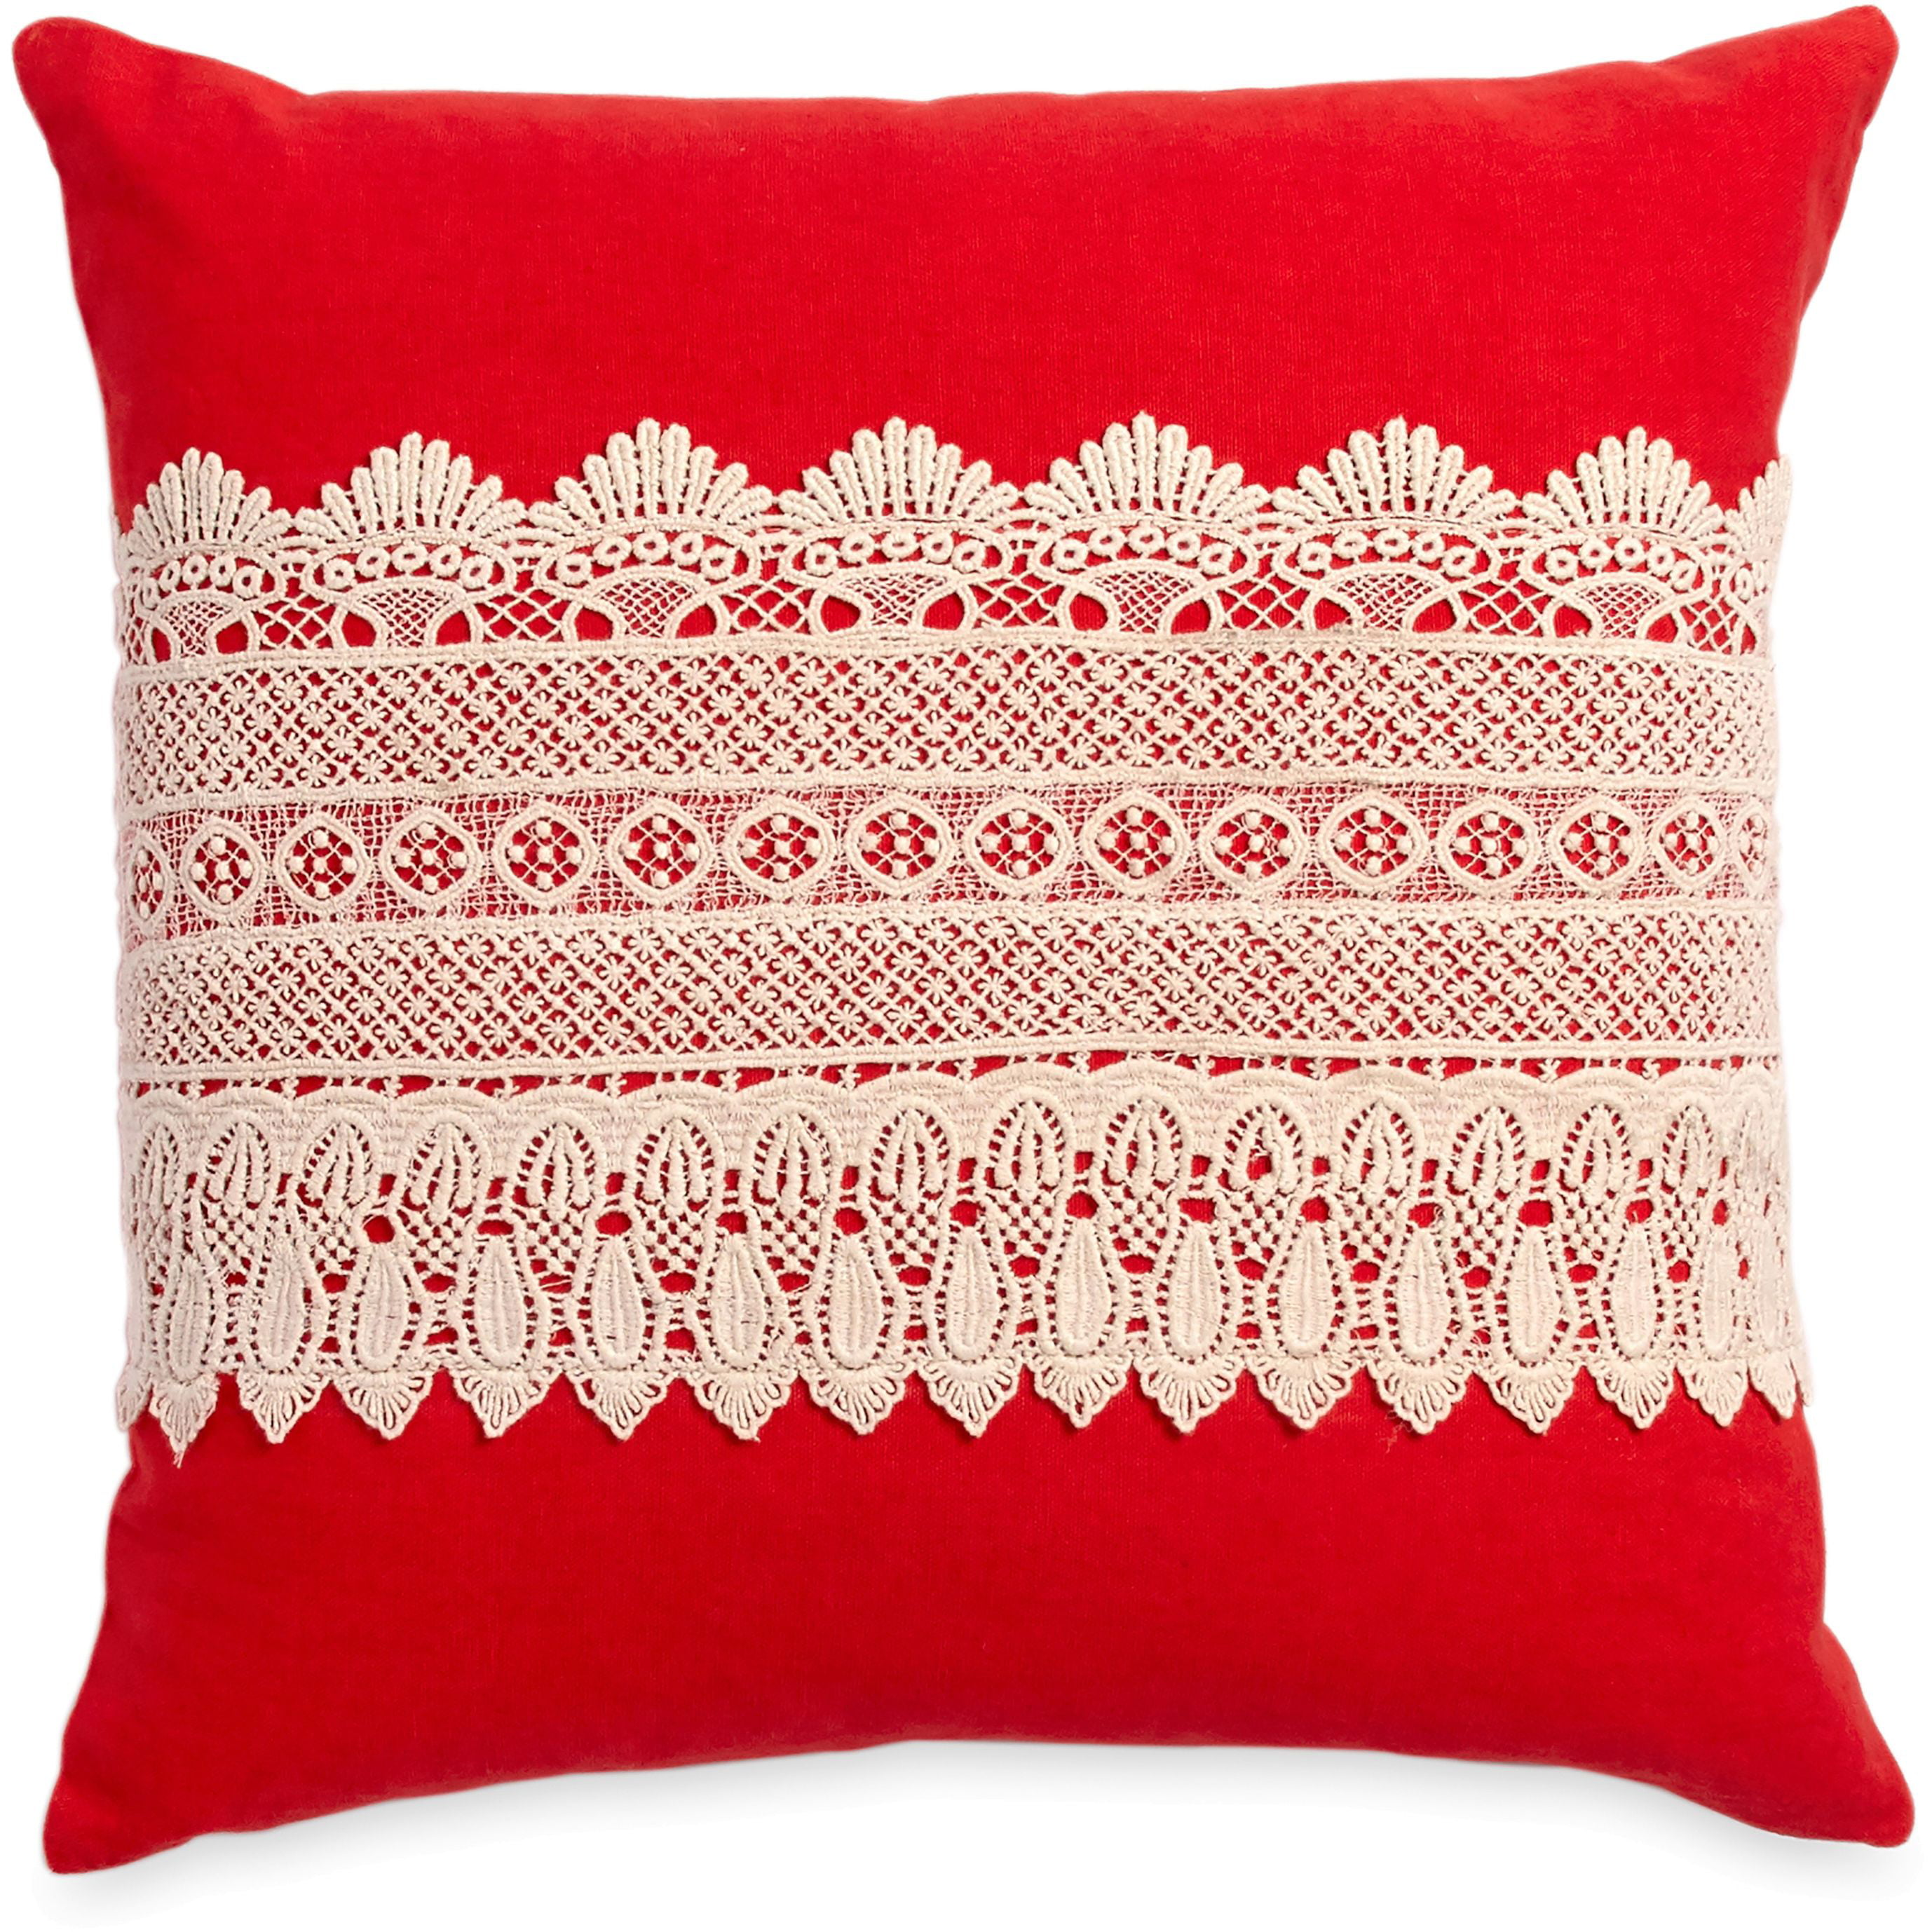 The Pioneer Woman Crochet Band 18x18 Decorative Pillow by CHF Industries, Inc.